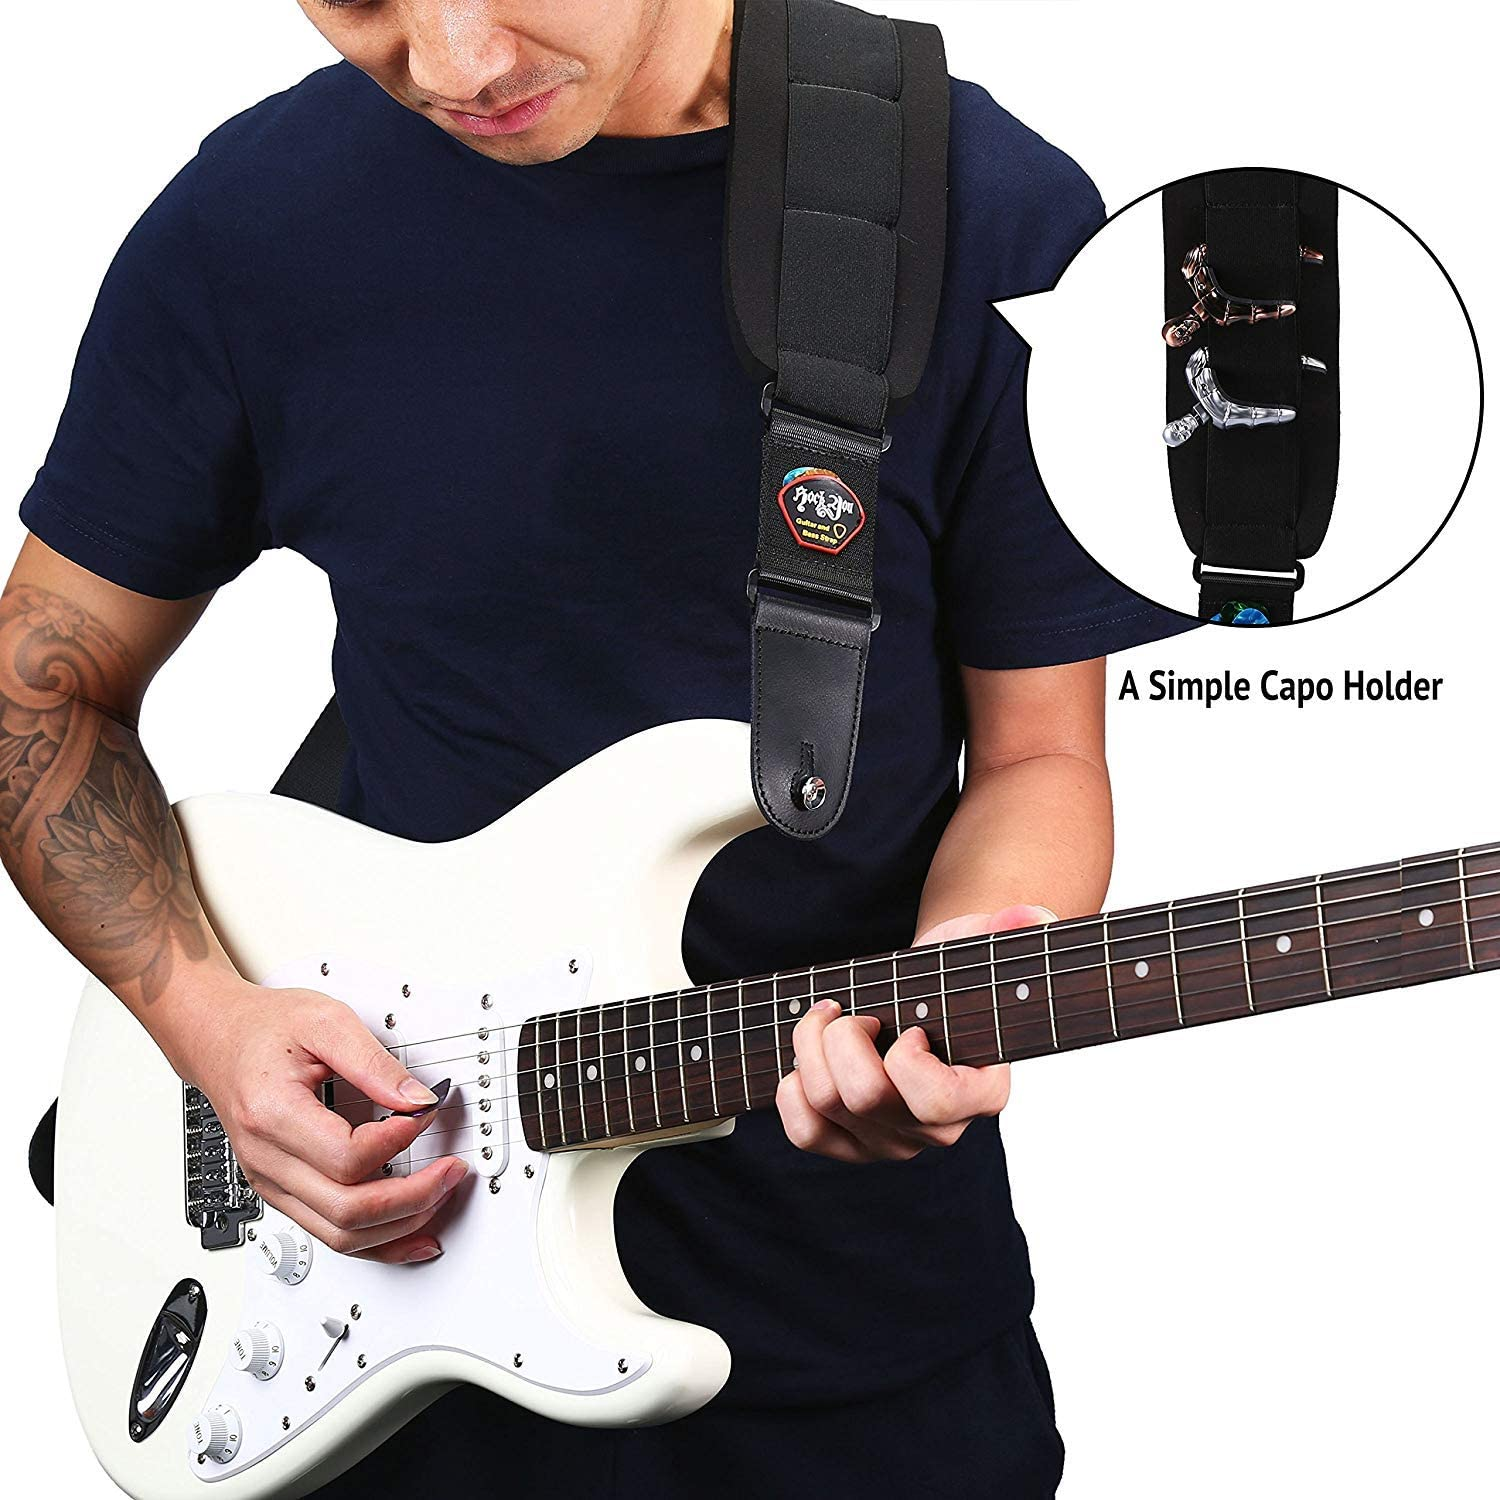 Bass Strap Padded Guitar Strap with Leather Ends and 3.7 inch Wide Neoprene SBR Memory Foam plus Inside Pick Holder Adjustable Length from 43 Inch to 53 Inch for Heavy Bass and Guitars